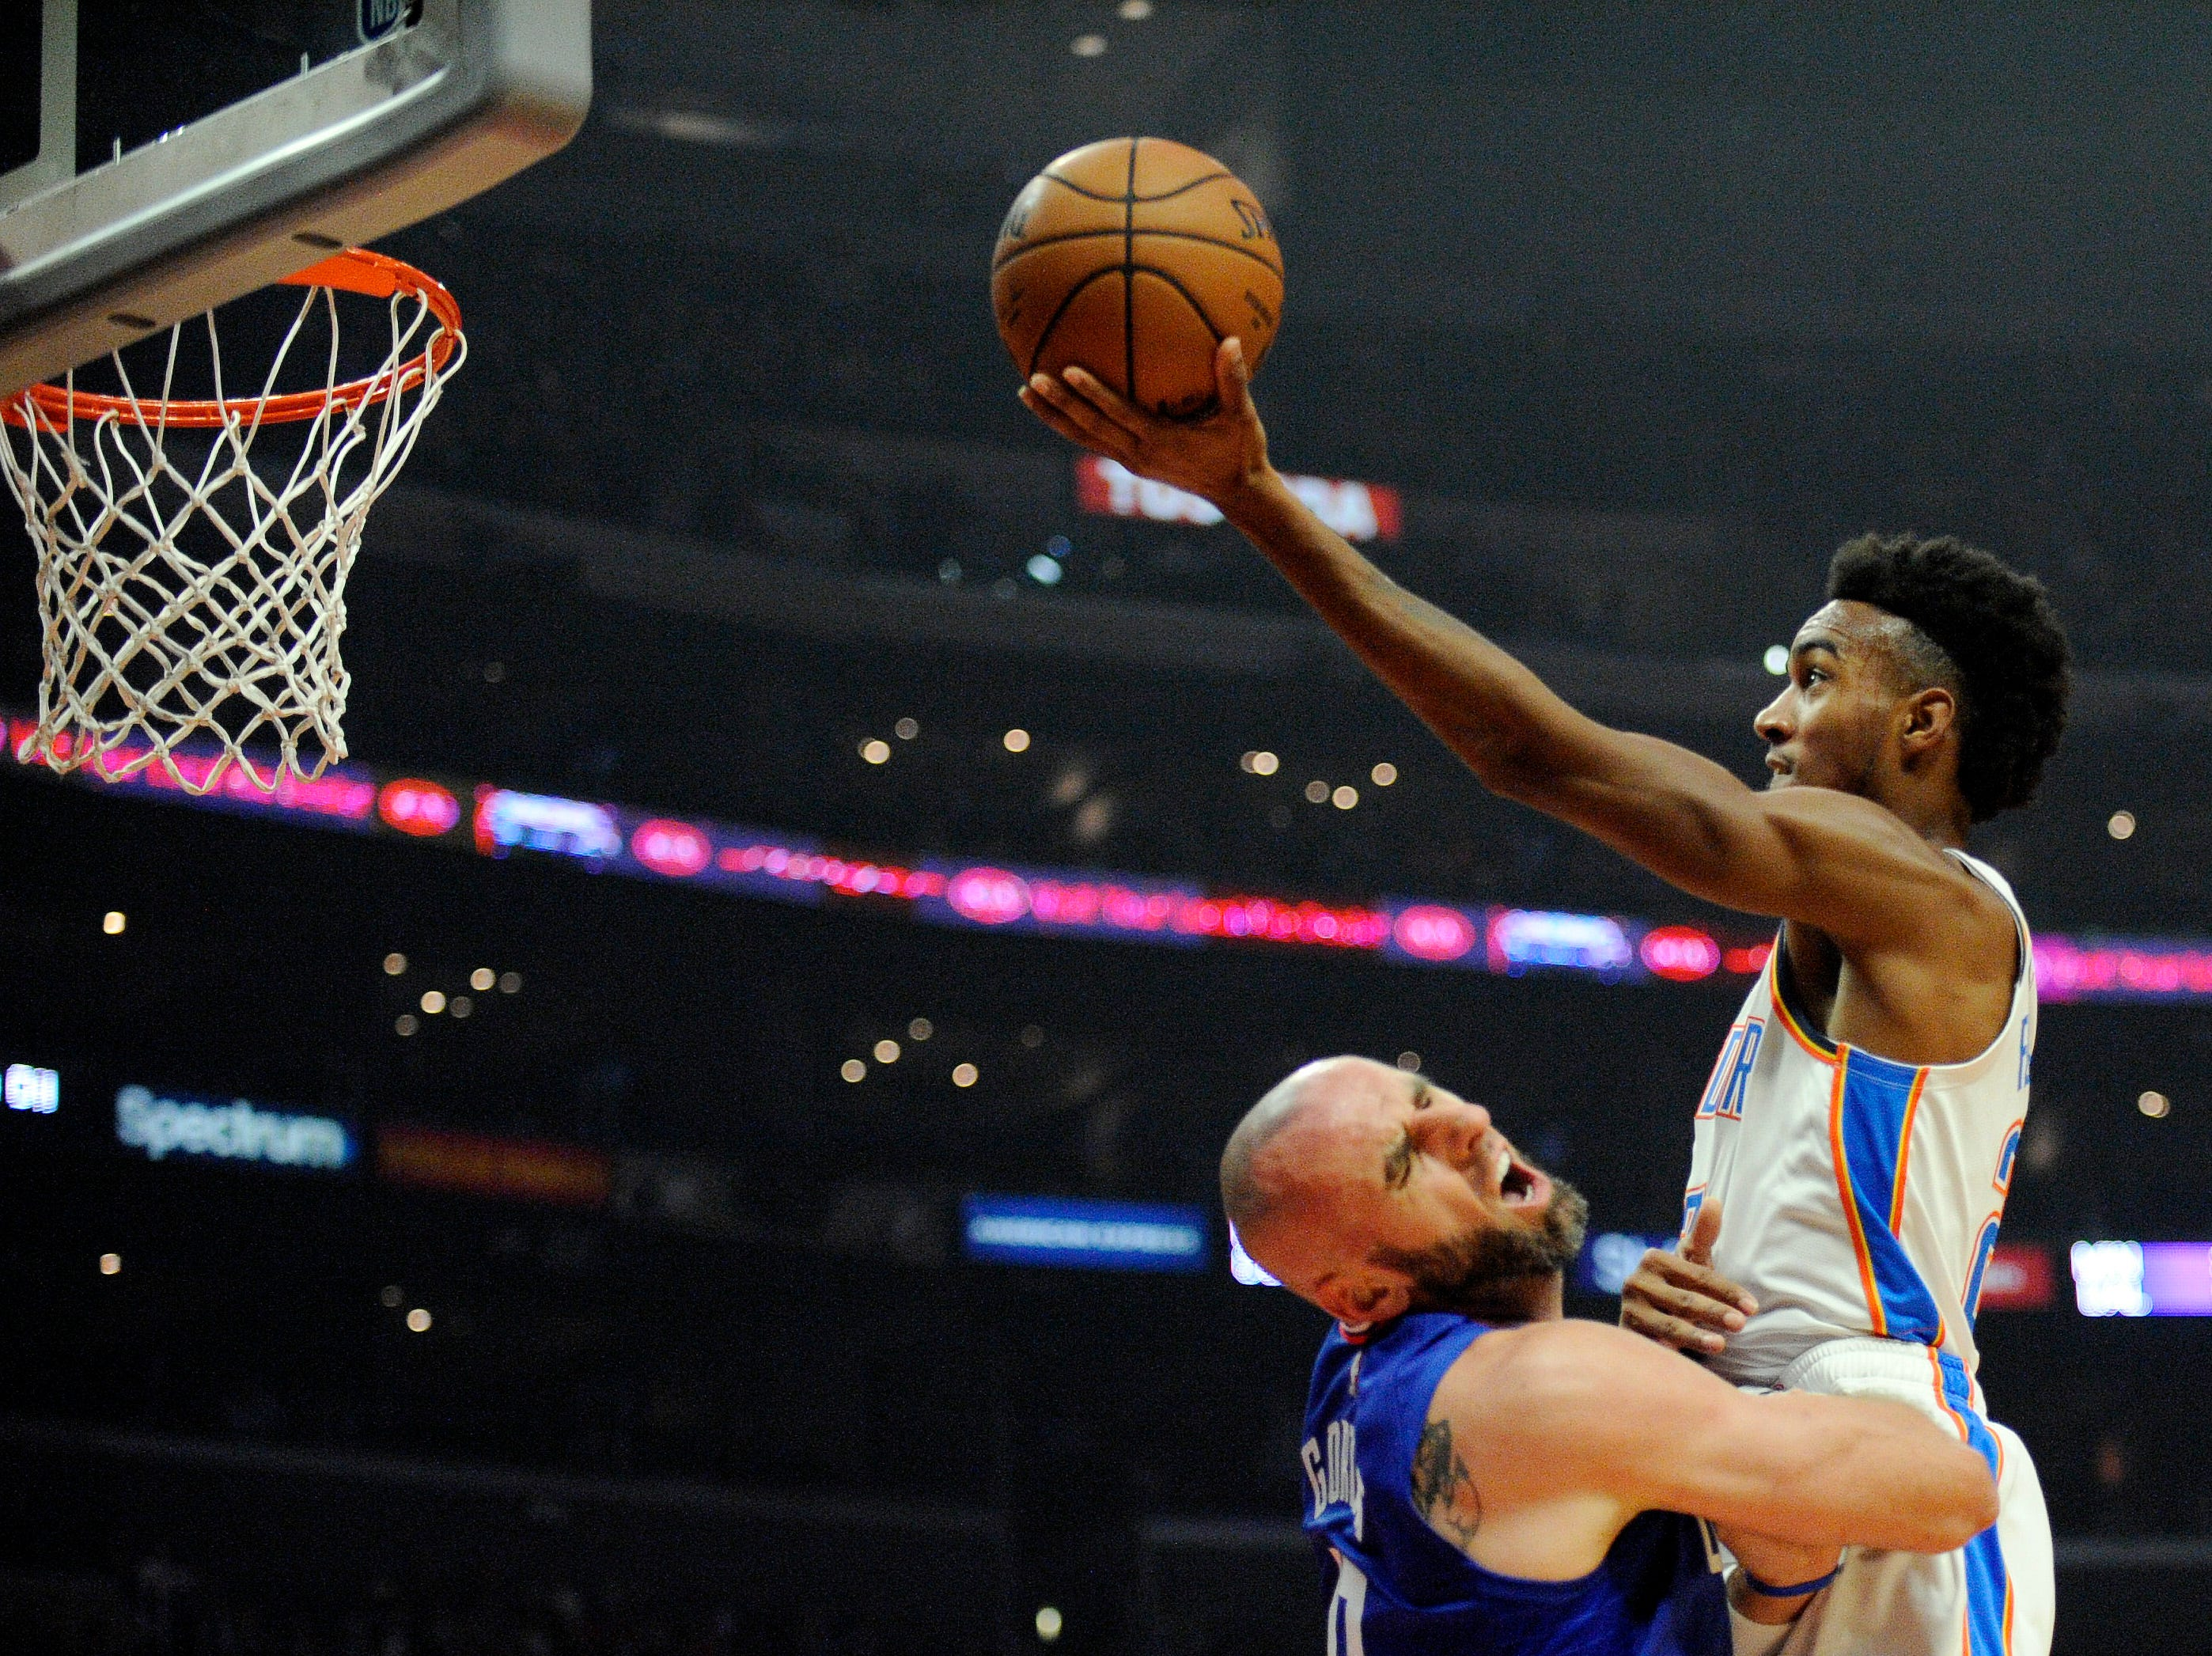 Oct. 19: Oklahoma City Thunder guard Terrance Ferguson (23) moves in to score a basket against Los Angeles Clippers center Marcin Gortat (13) during the first half at Staples Center.